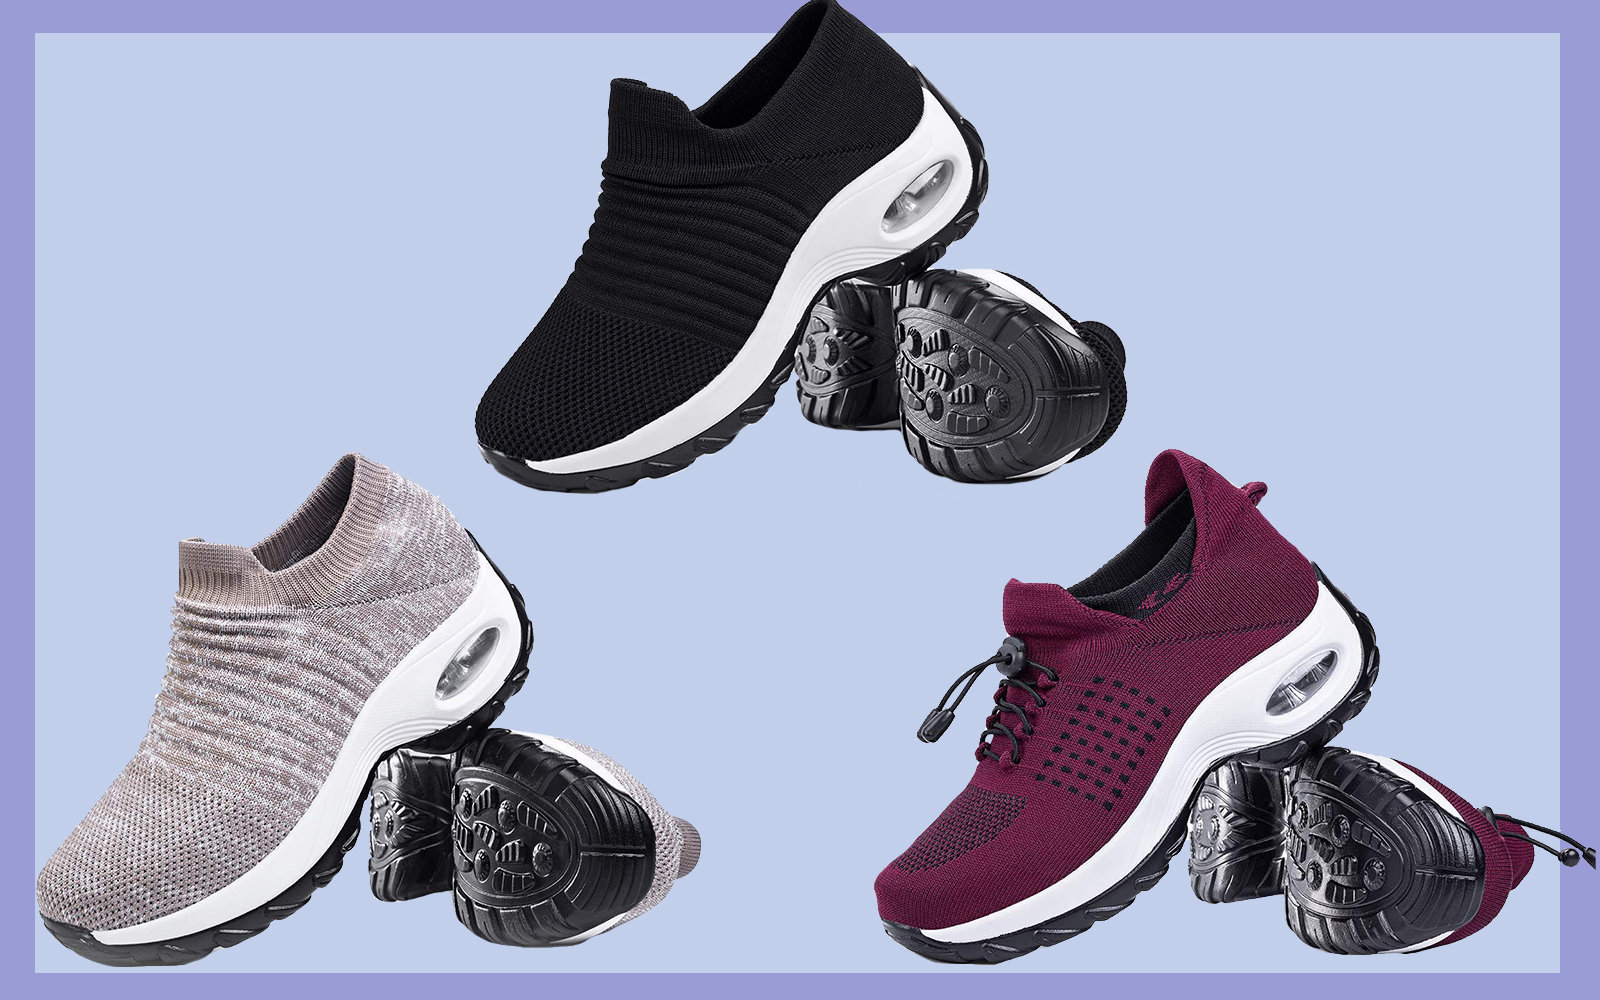 The Women's Slip-on Sneakers Are the Best Walking Shoes on ...